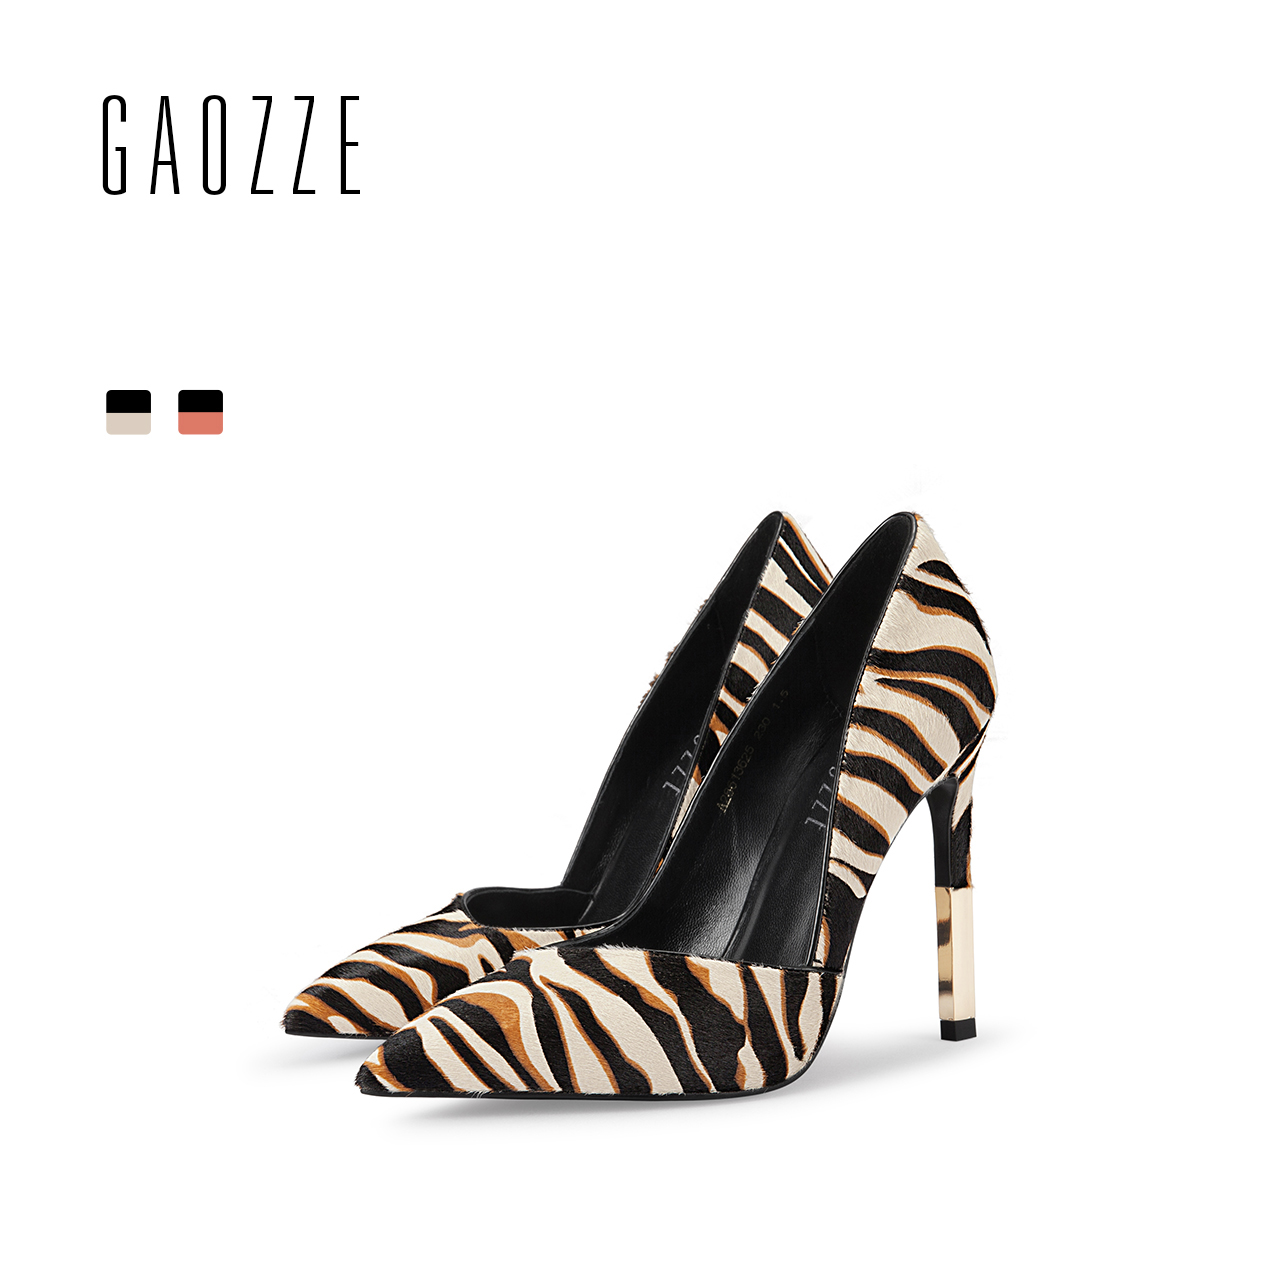 GAOZZE Pointed Toe Fashion Leopard Social Party High Heels Shoes Luxury Cattle Hair Ladies Pumps Shoes 2018 Spring New new spring summer women pumps fashion pointed toe high heels shoes woman party wedding ladies shoes leopard pu leather